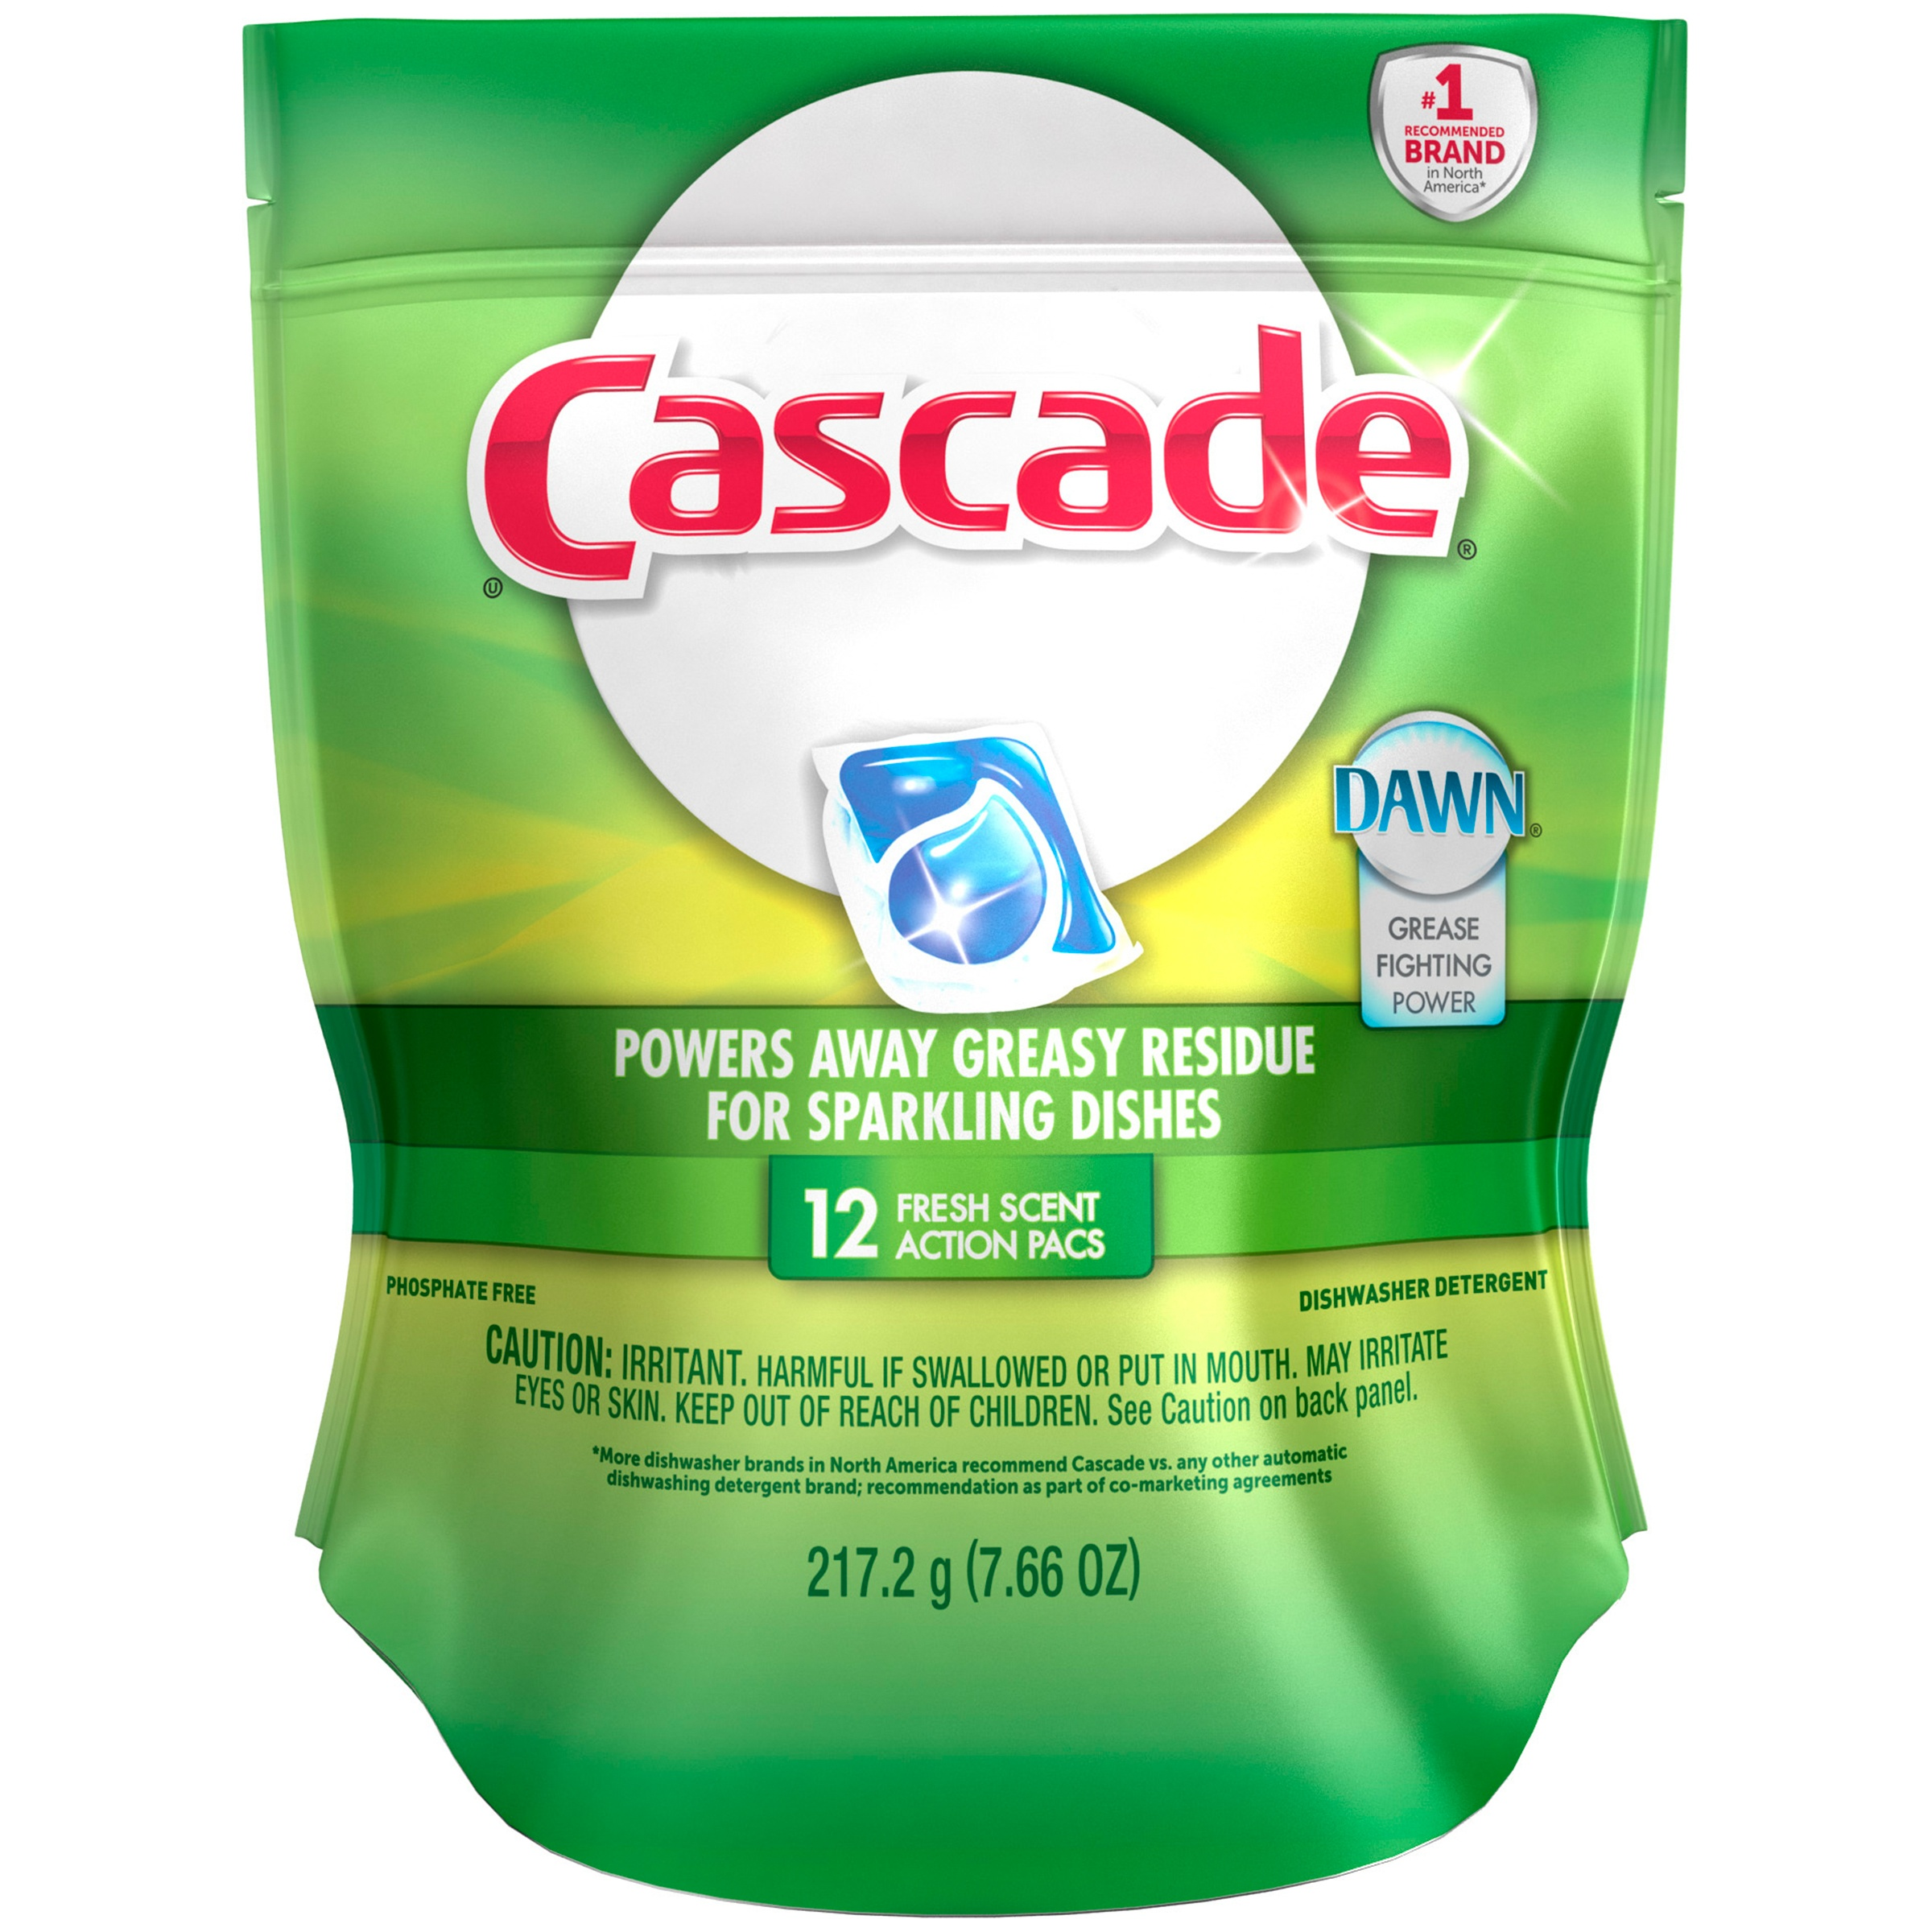 Cascade Dawn Fresh Scent Action Pacs Dishwasher Detergent 12 ct